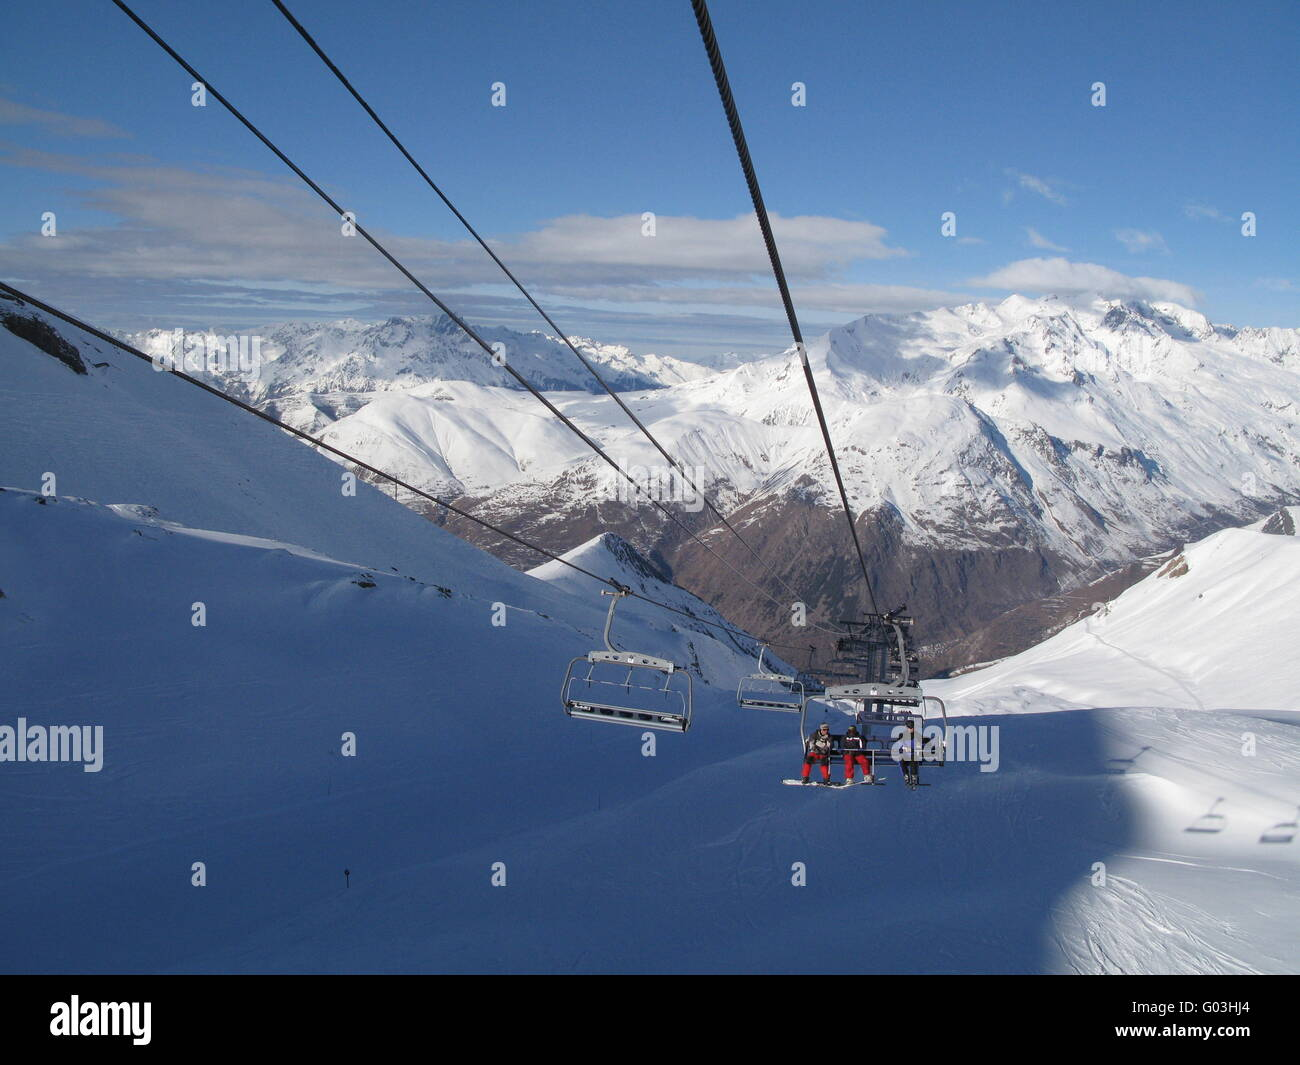 sunny alpine scene with chairlifts Stock Photo